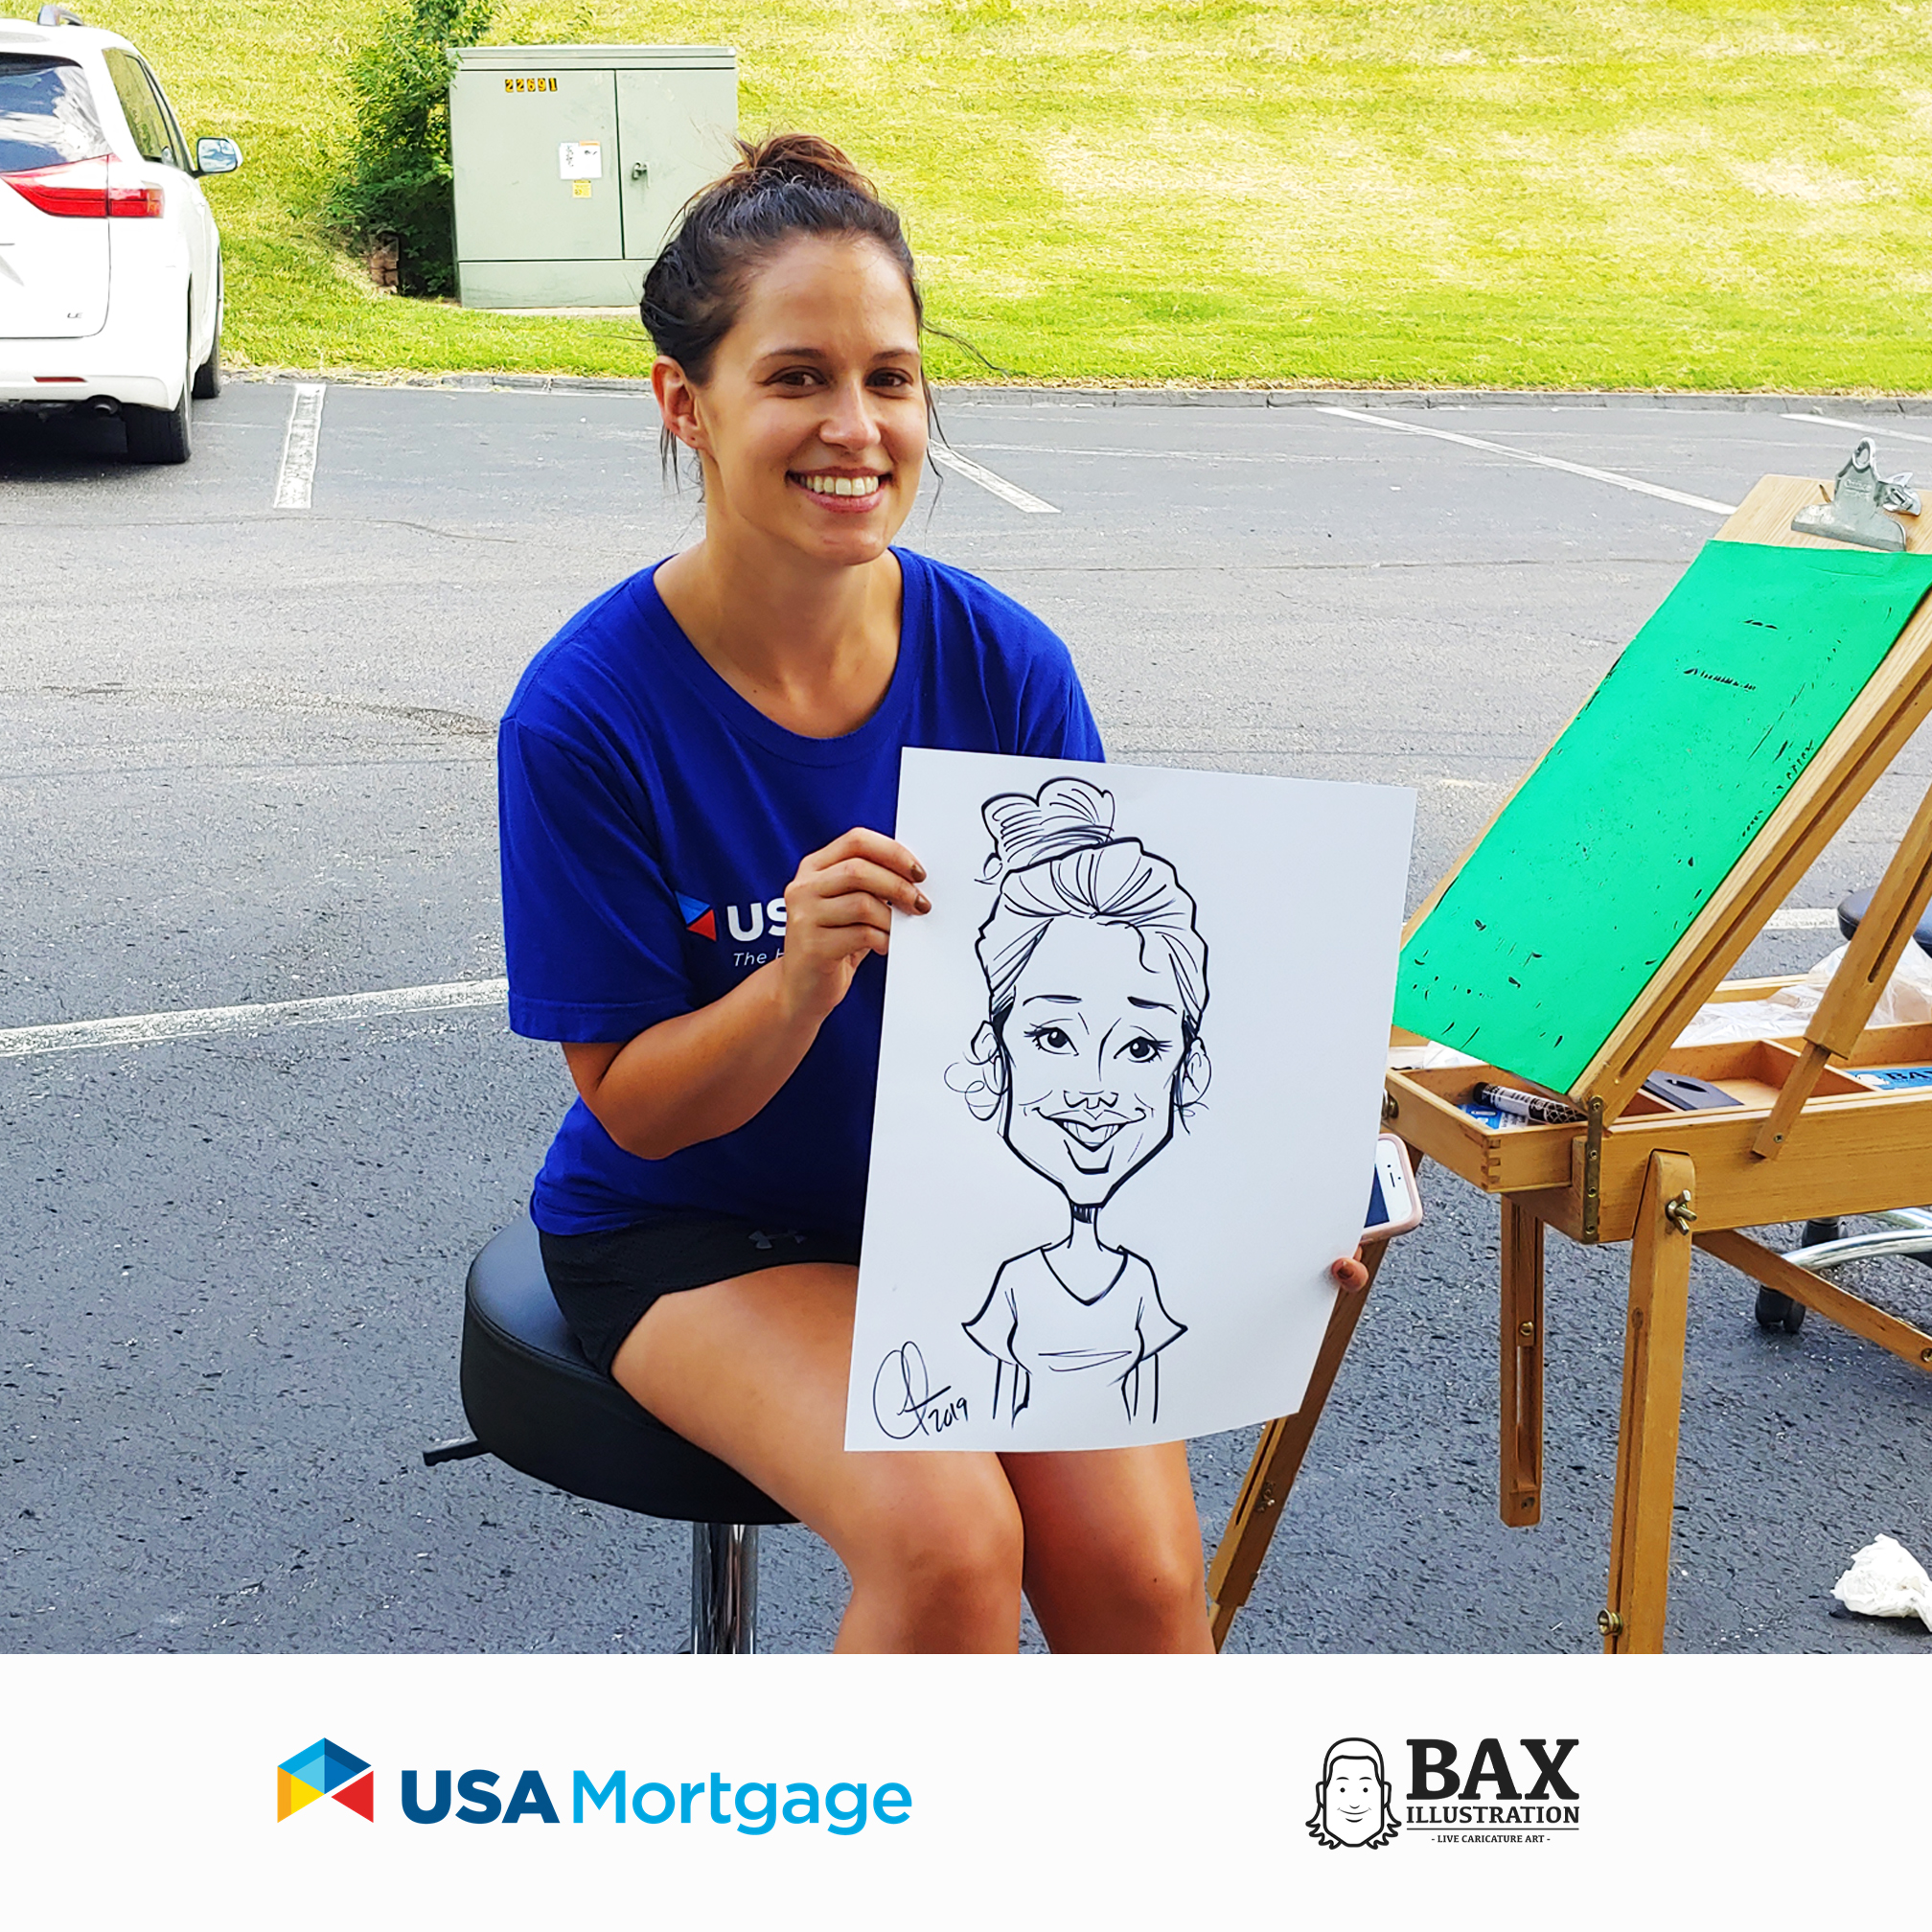 Chelsea Vonder Haar holding caricature by Bax Illustration at a USA Mortgage event in St. Louis, Missouri